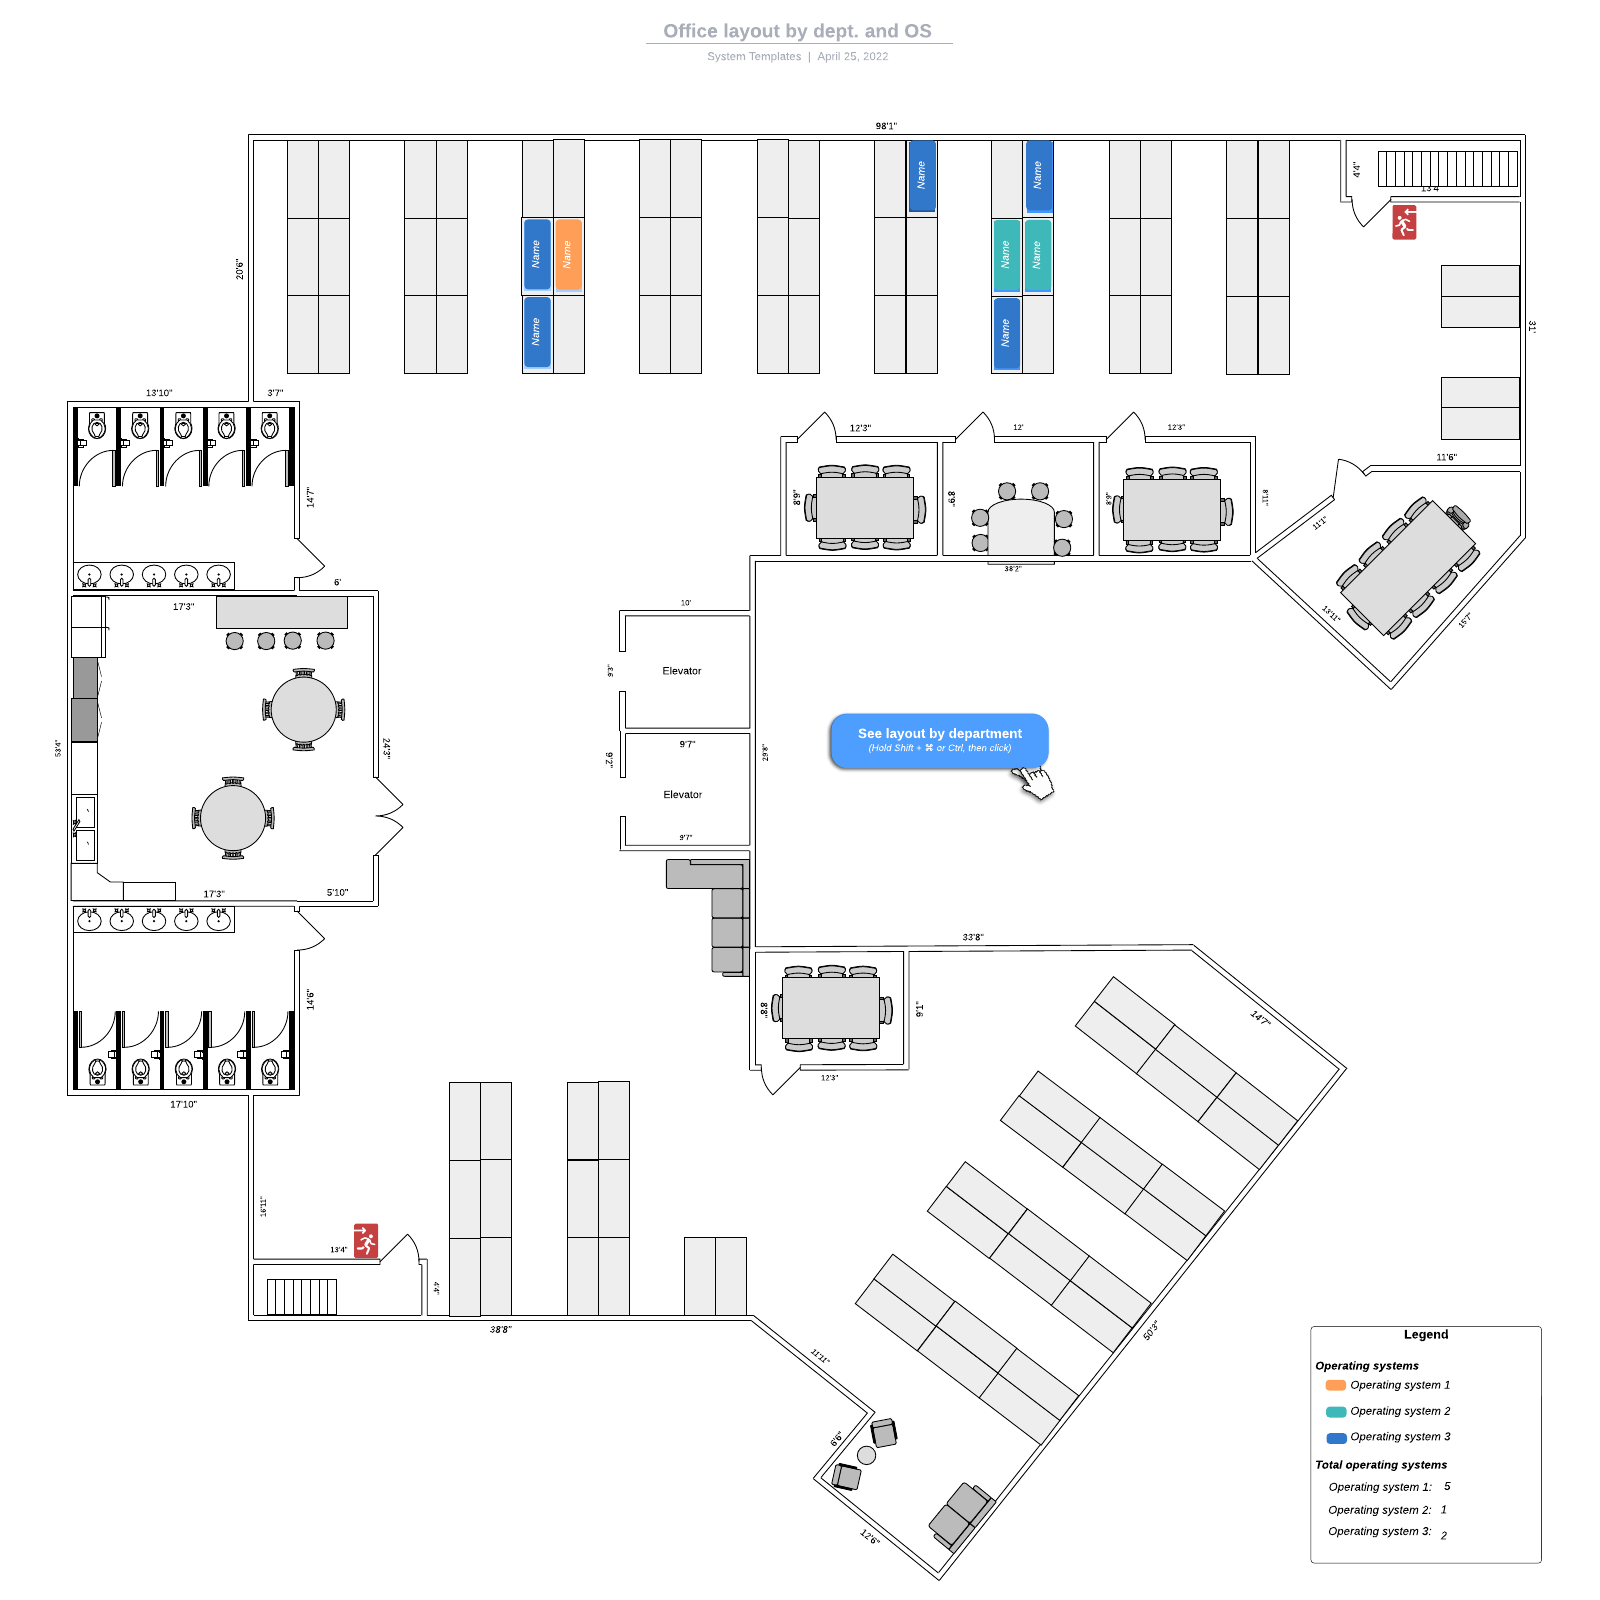 Office layout by dept. and OS